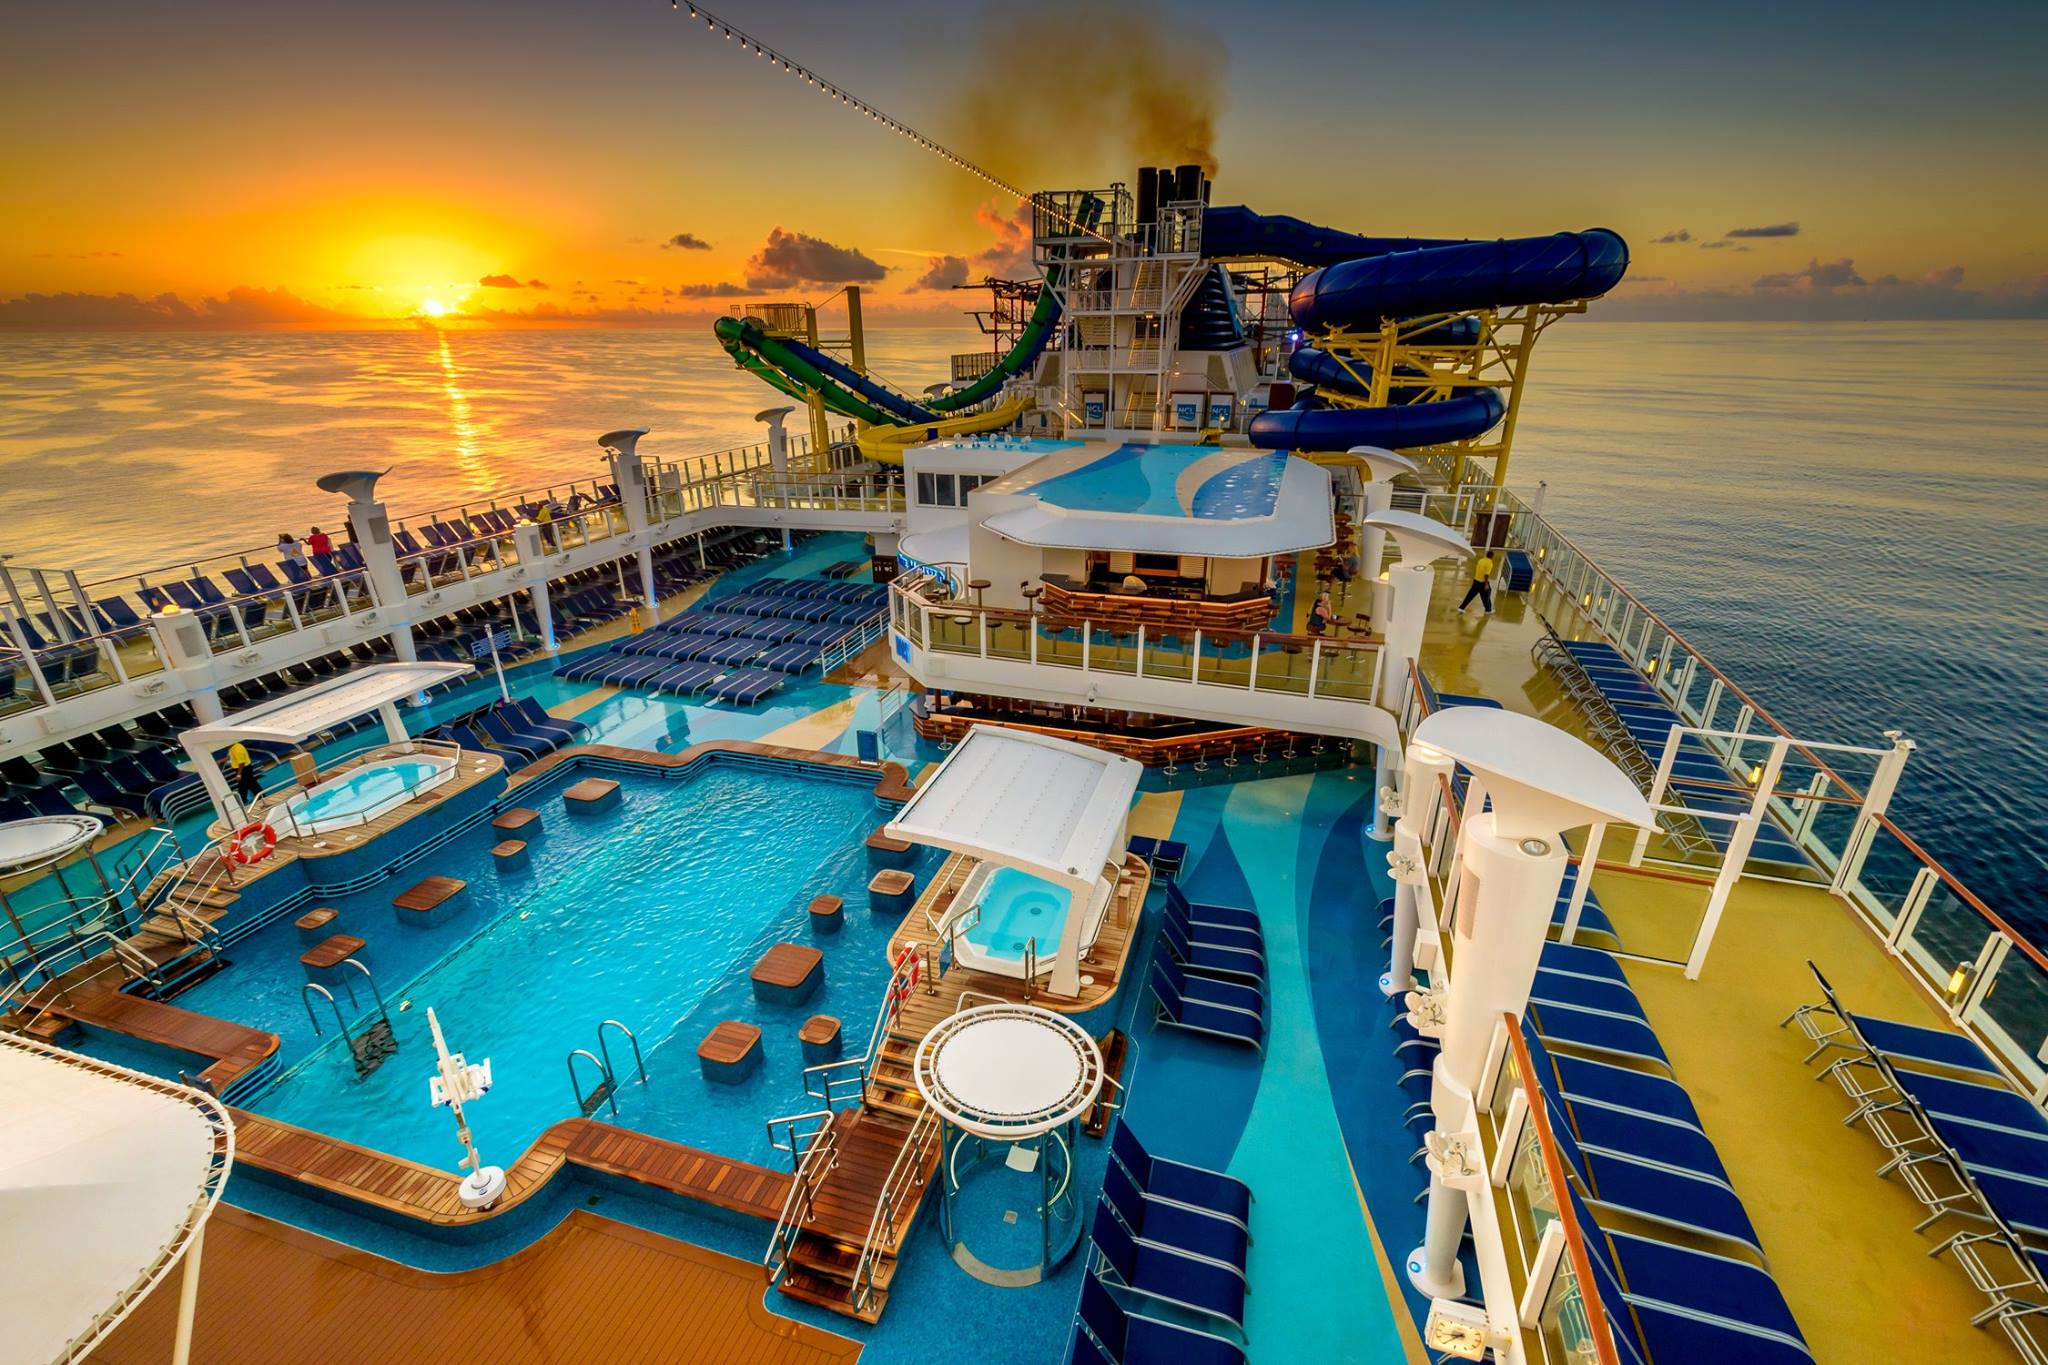 25 Tips to Save BIG on Your Next Cruise - sunset on a cruise ship